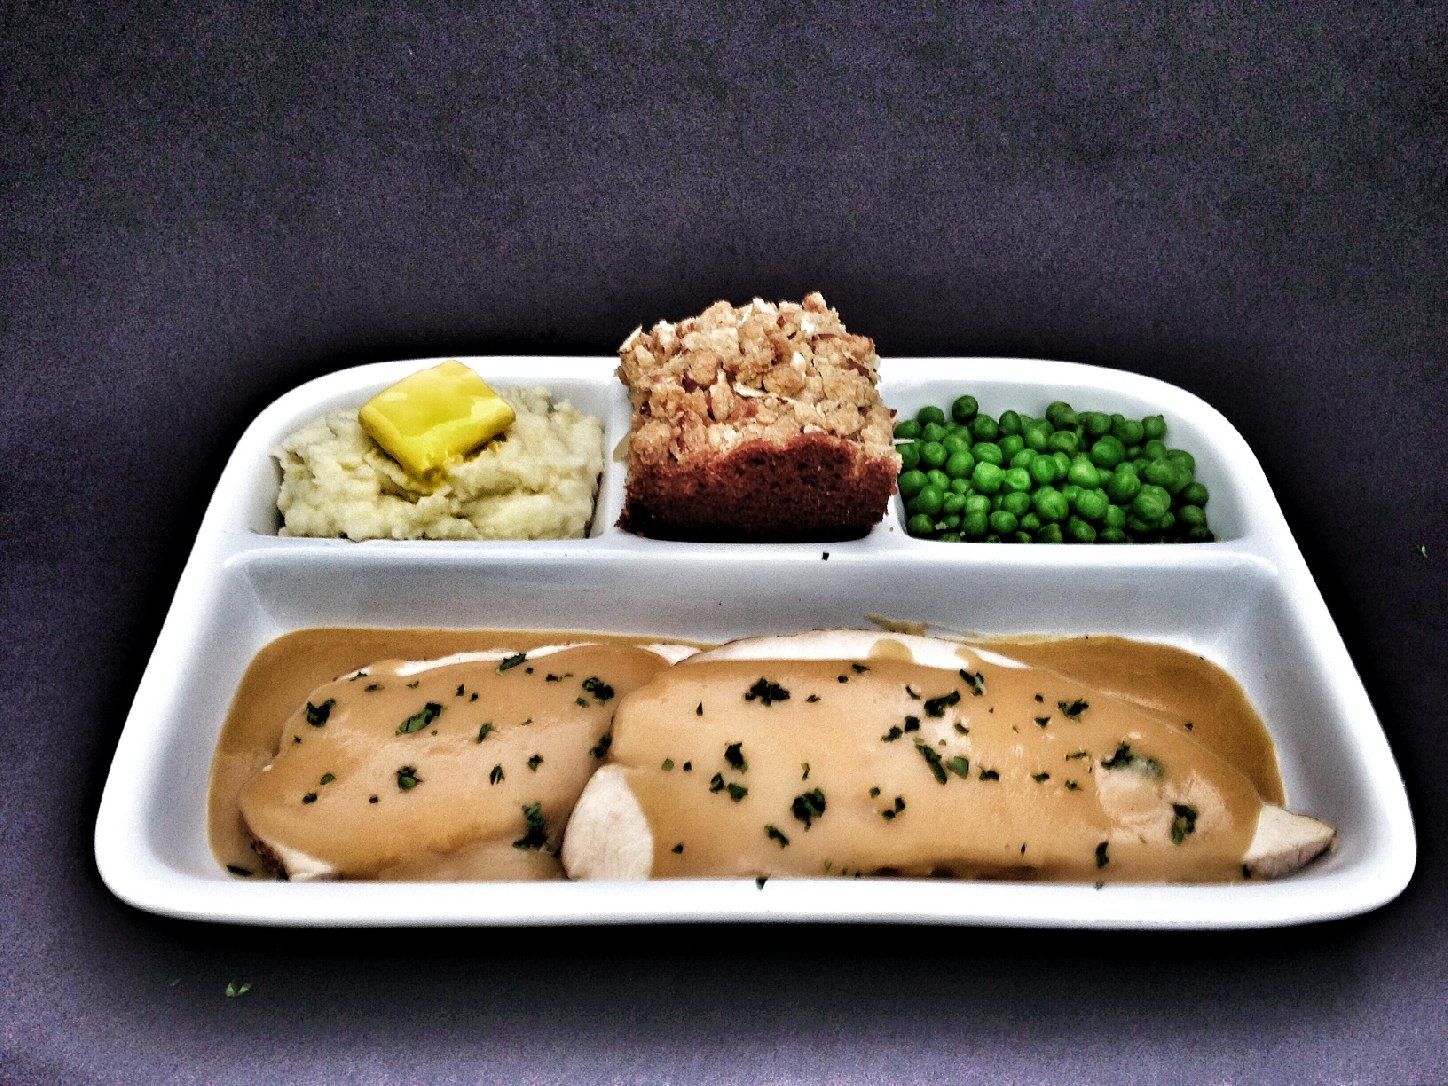 TV Dinner. Photo: Michael Procopio